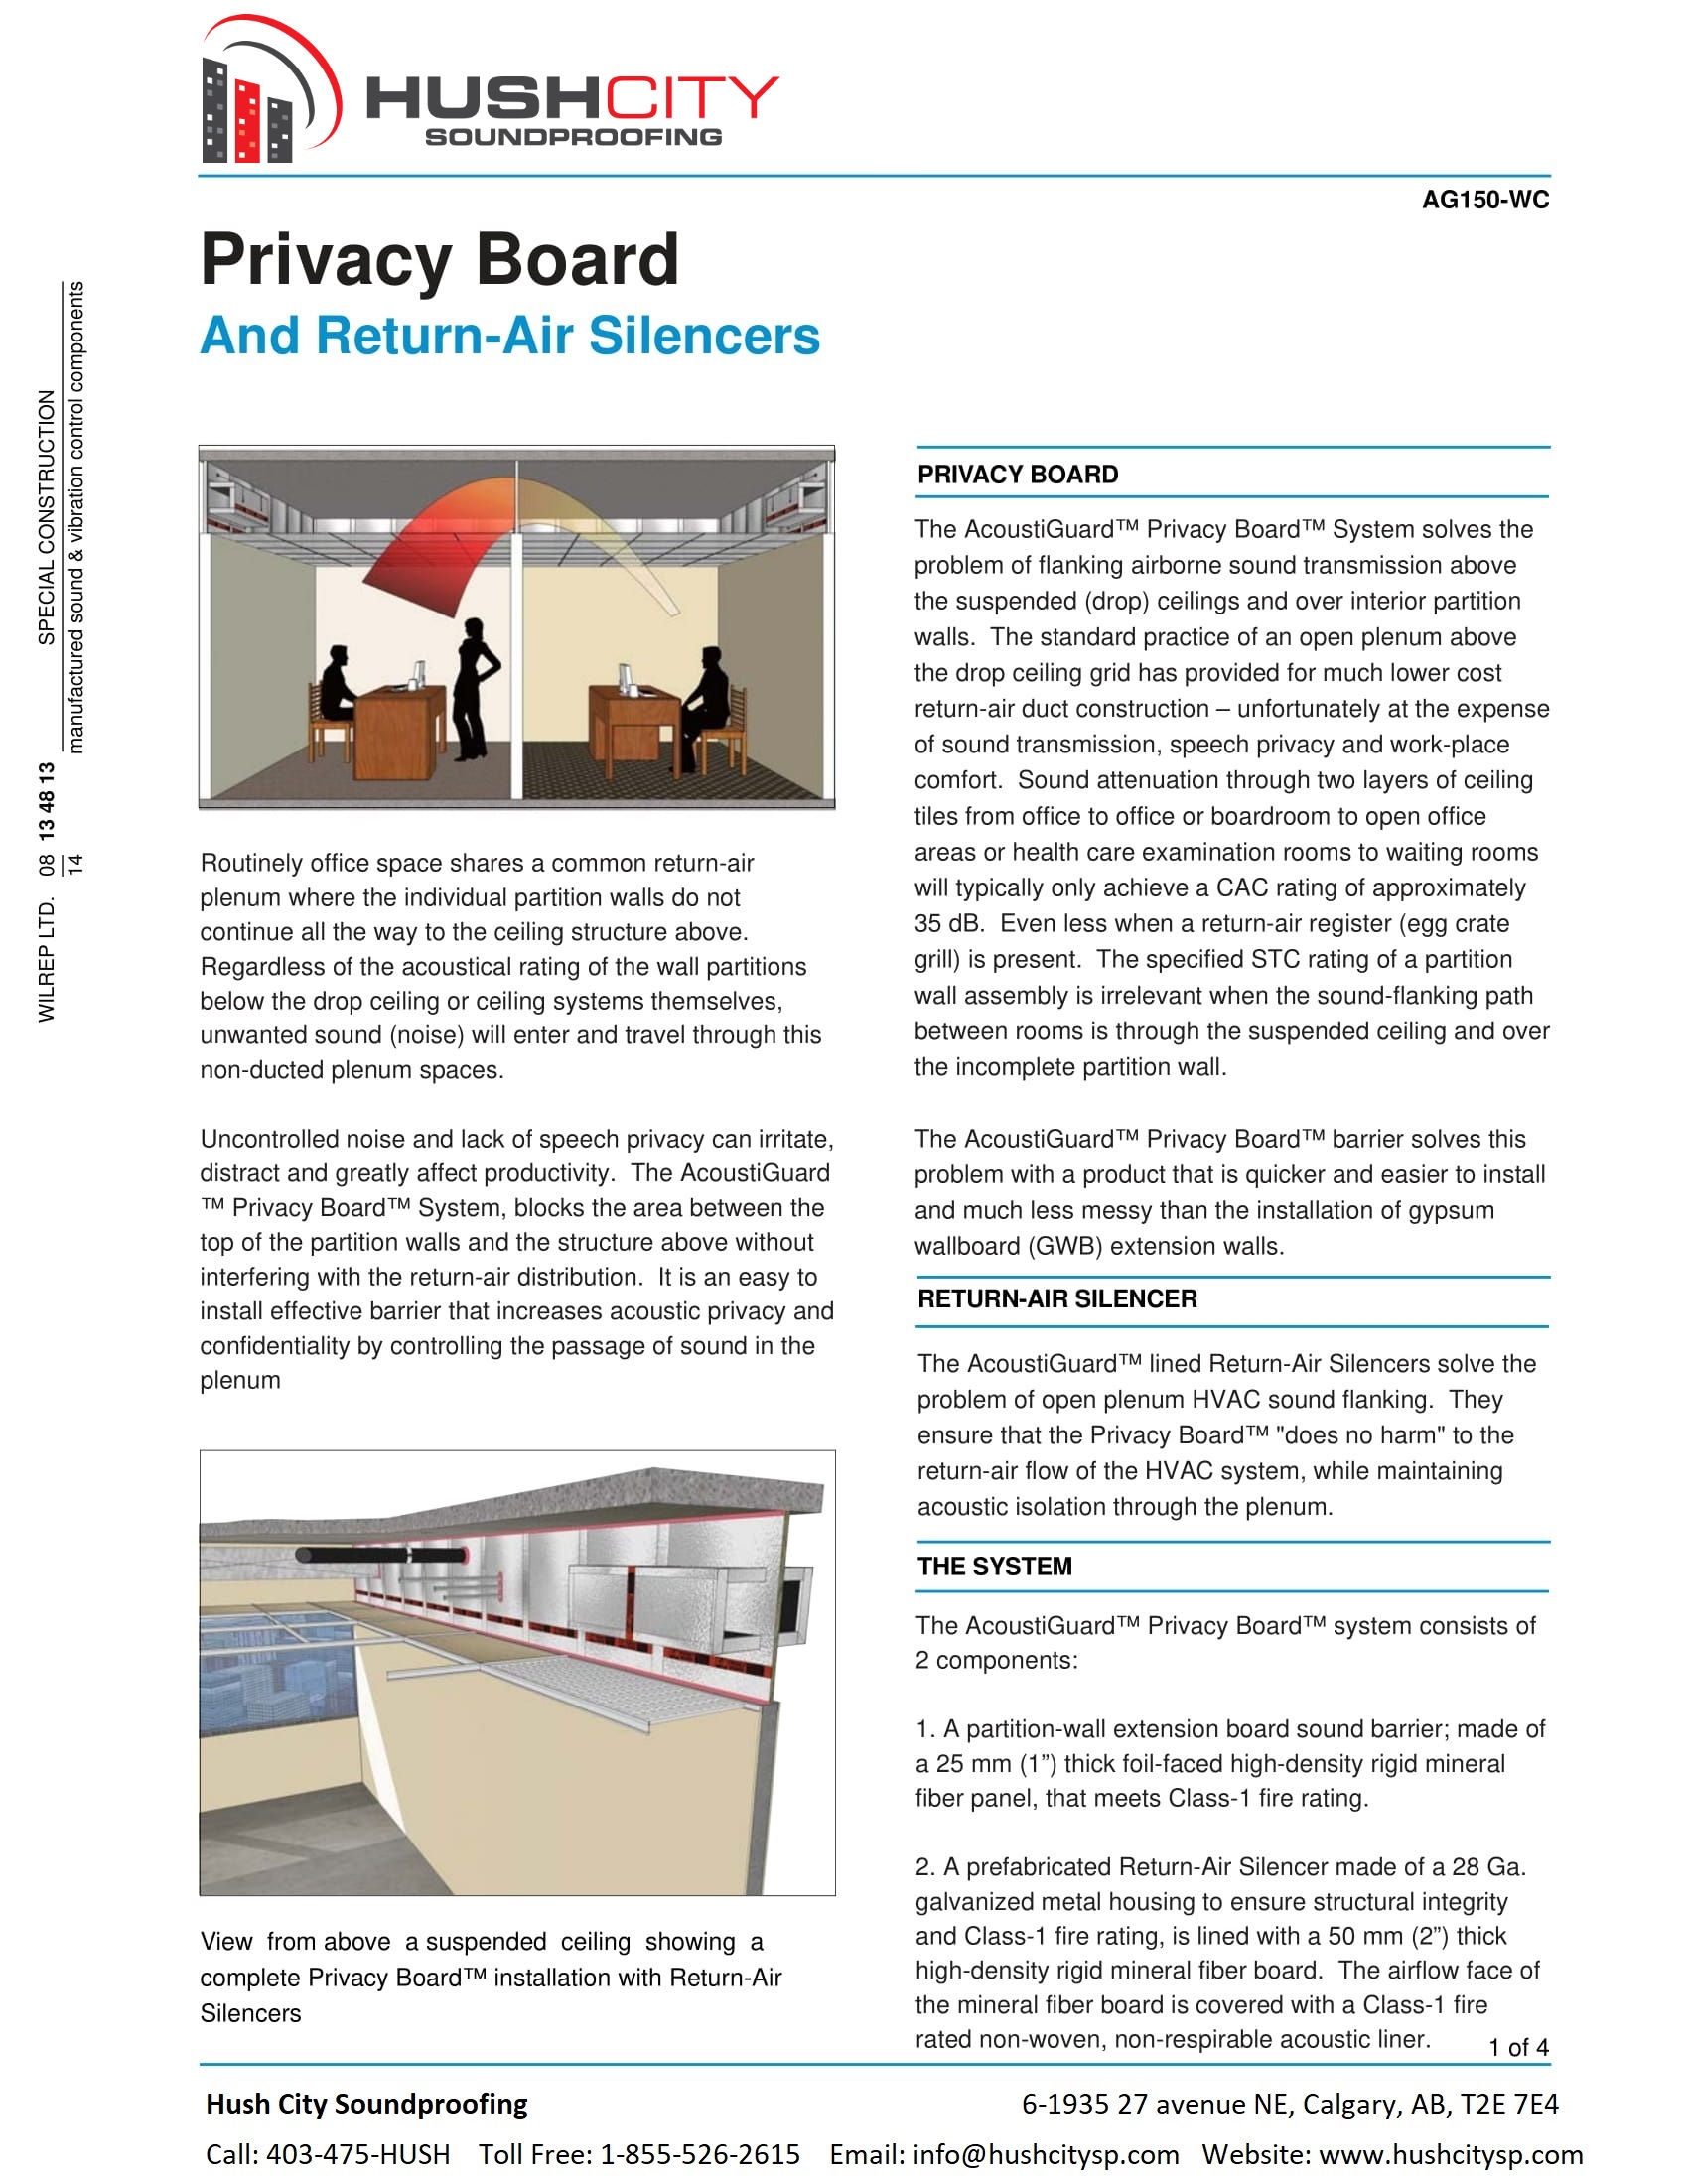 Privacy Board & Return Air Silencers – Hush City Soundproofing ...